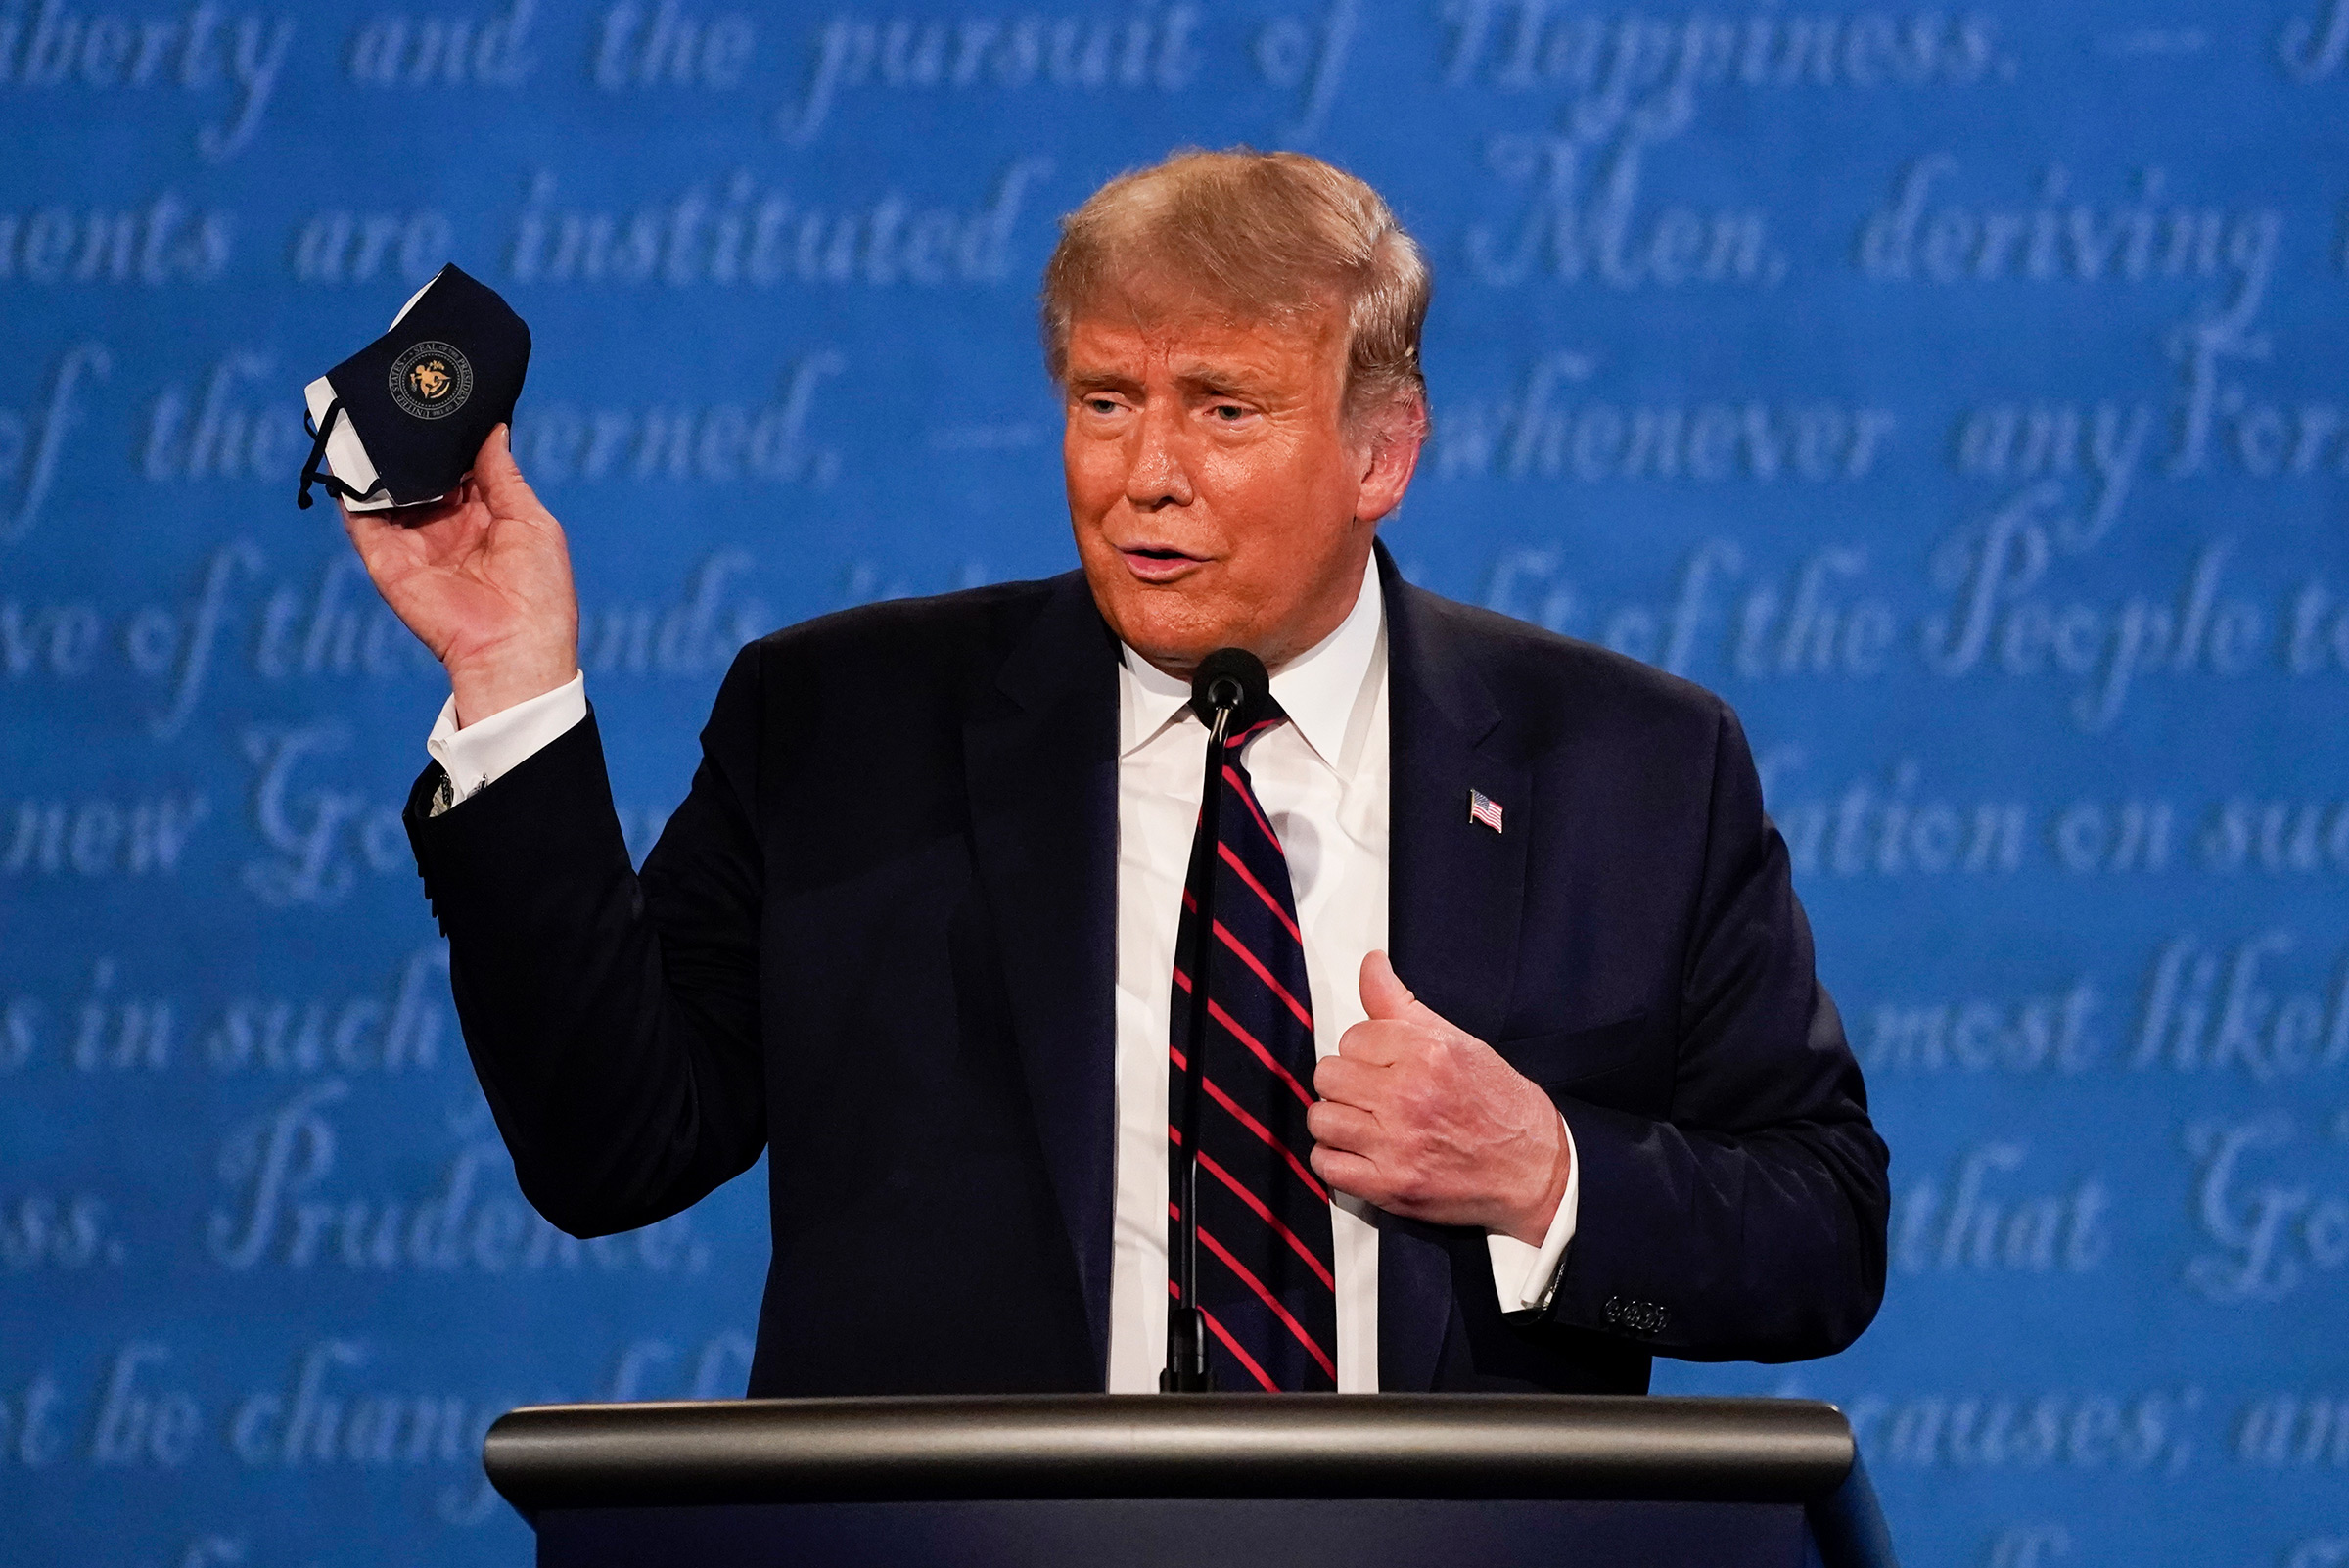 President Donald Trump holds out his face mask during the first presidential debate at Case Western University and Cleveland Clinic, in Cleveland on Sept. 29, 2020.